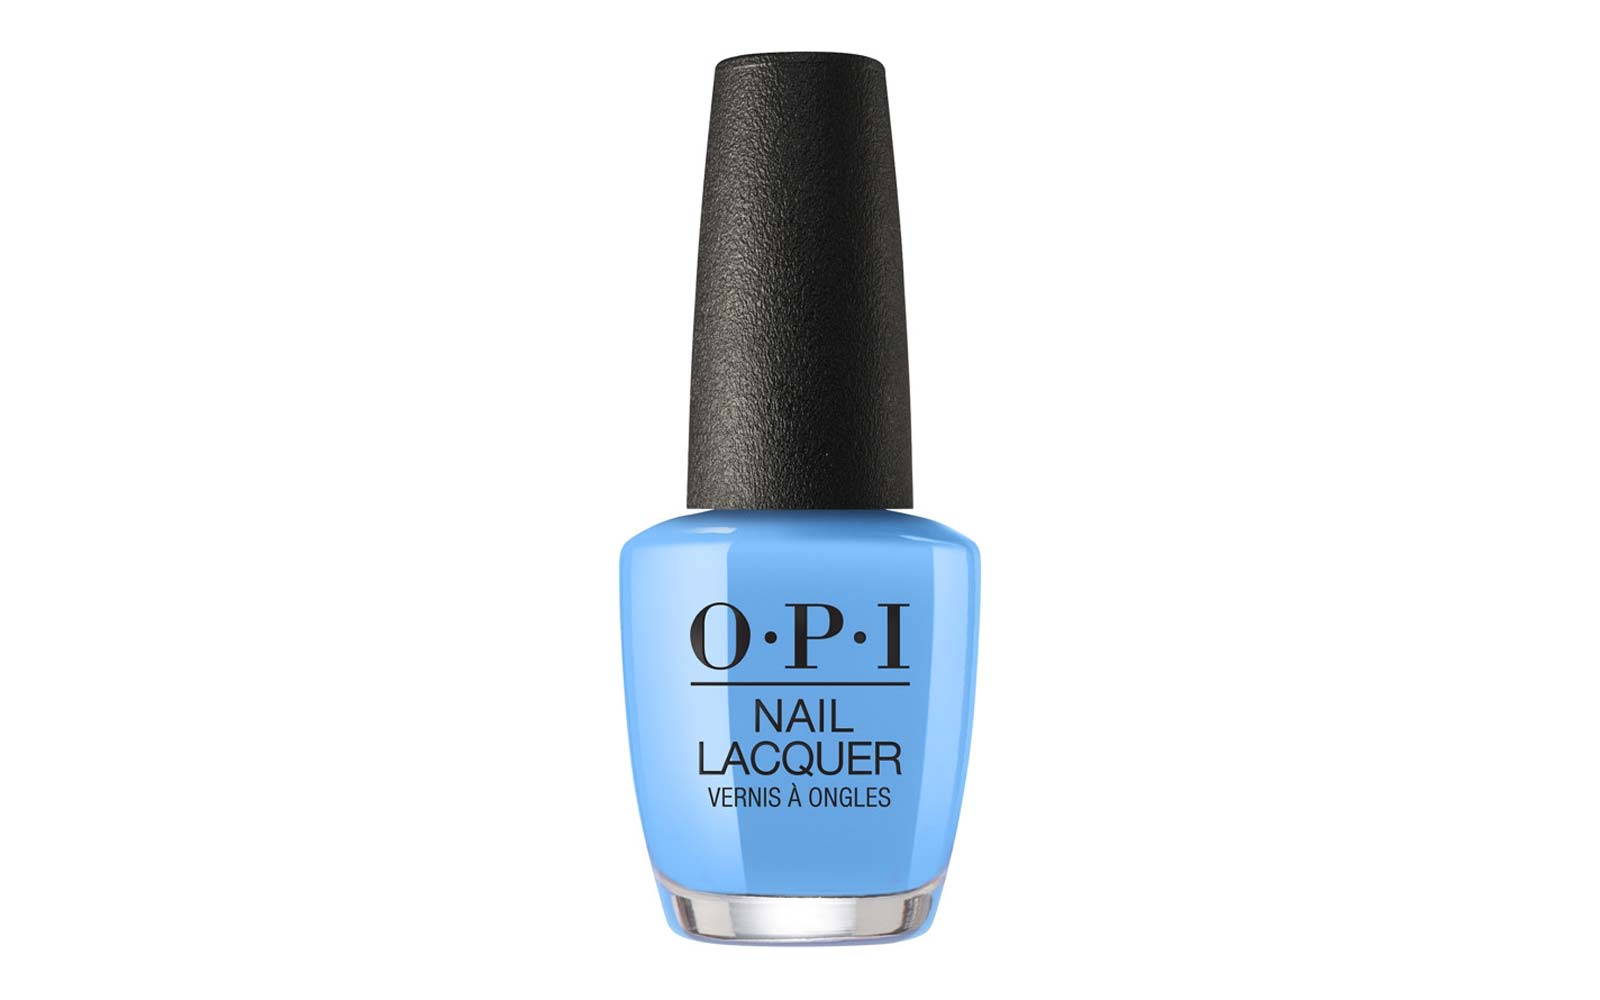 O.P.I. Nail Polish in 'Dreams Need Clara-fication' Shade